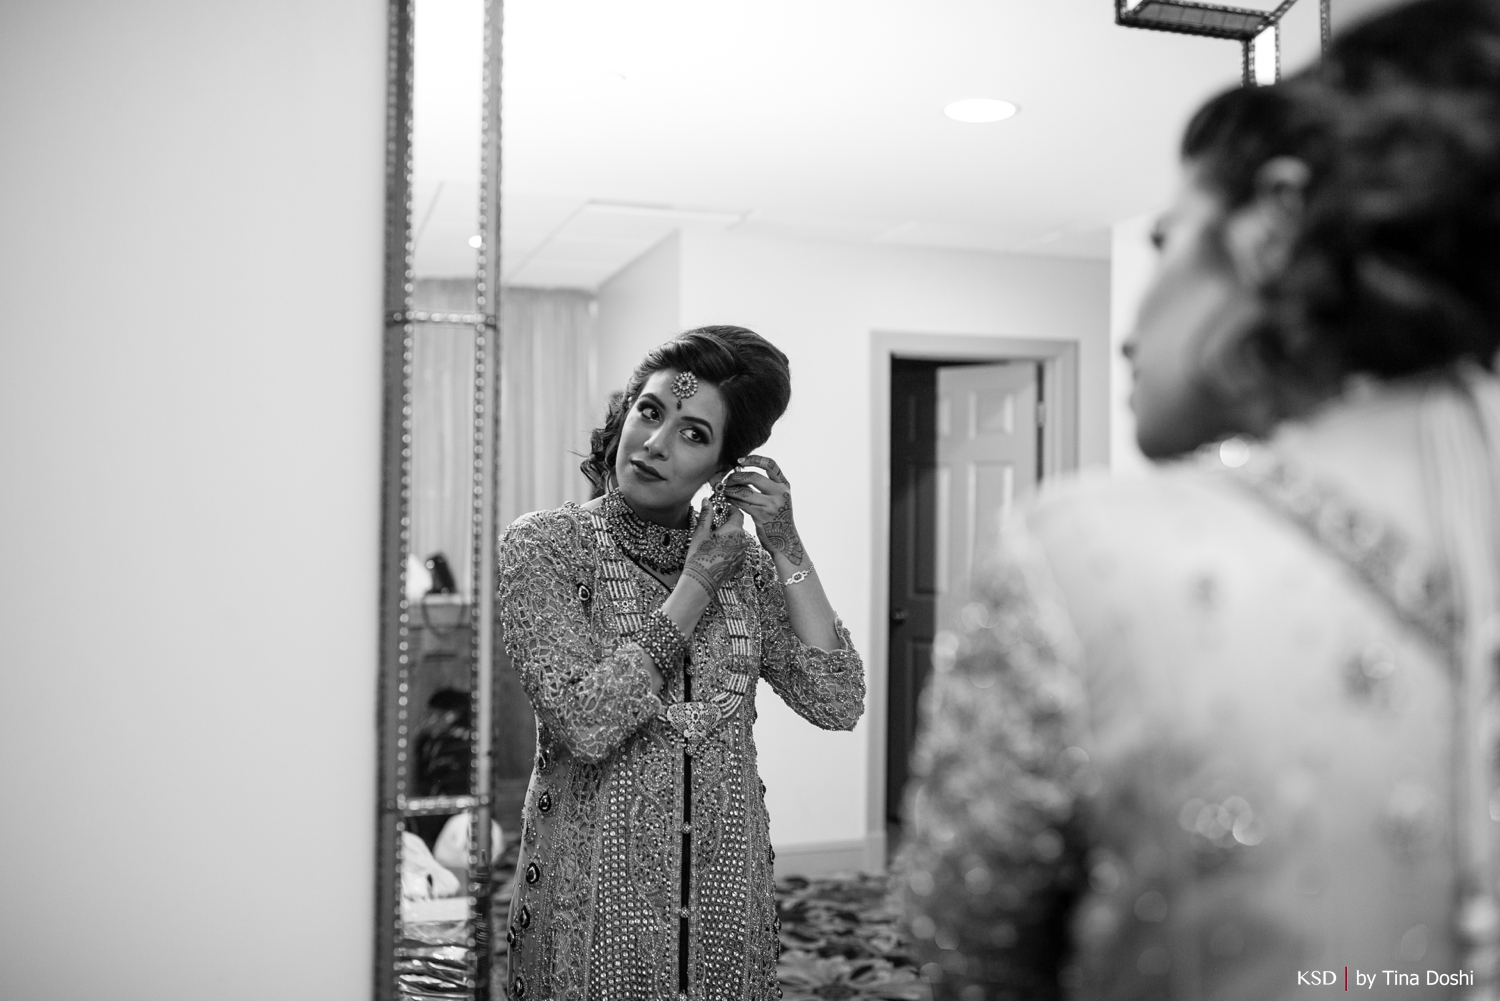 nj_south_asian_wedding_0069